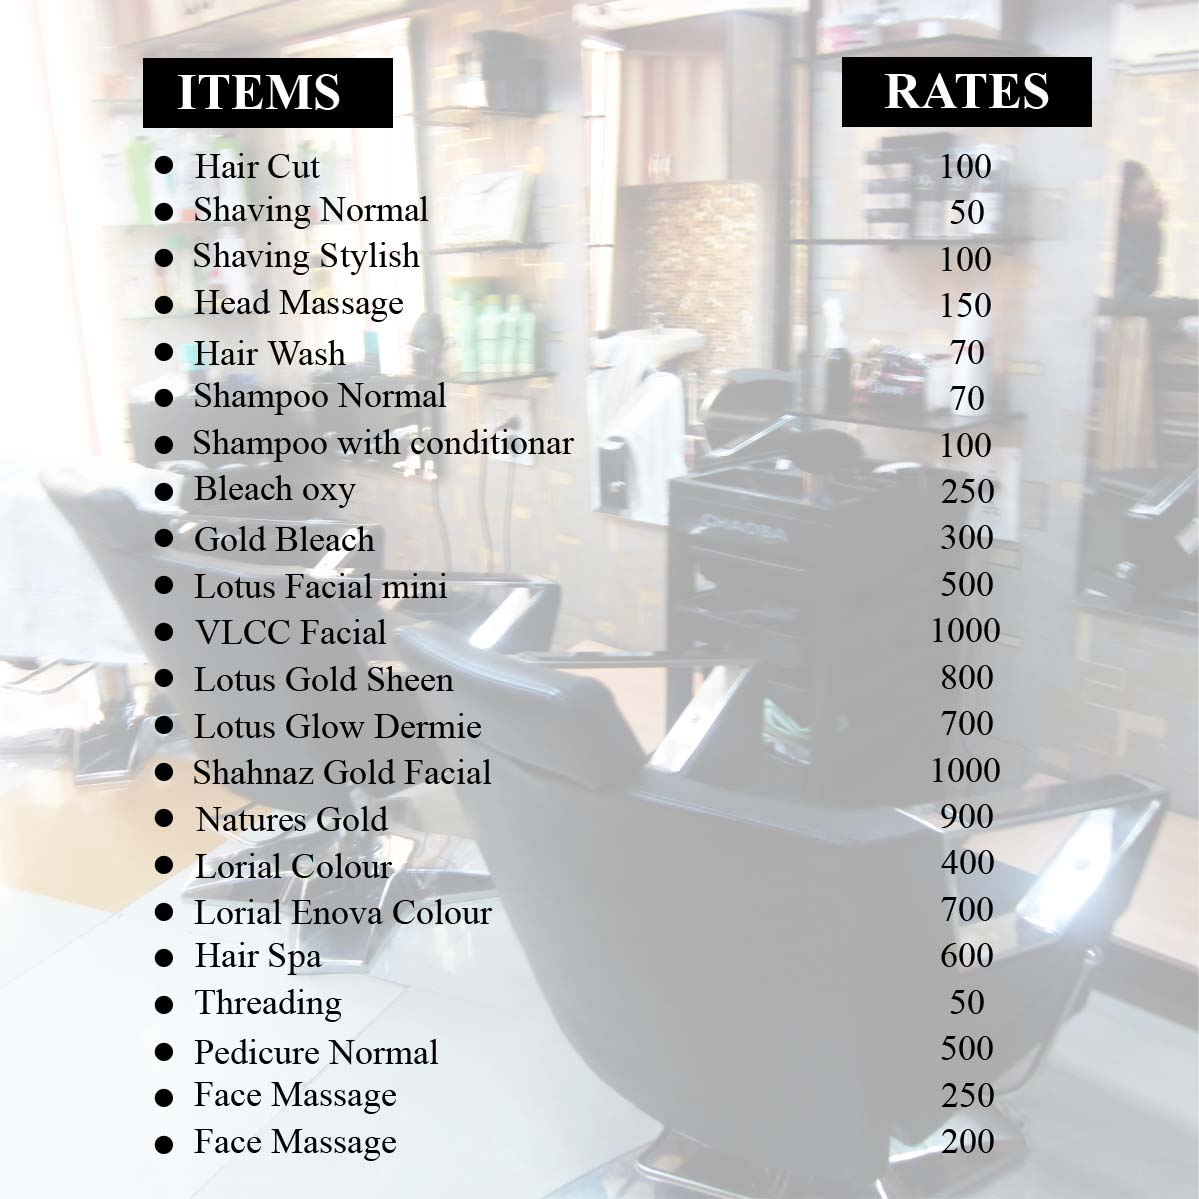 rate list of m point man salon in gurgaon